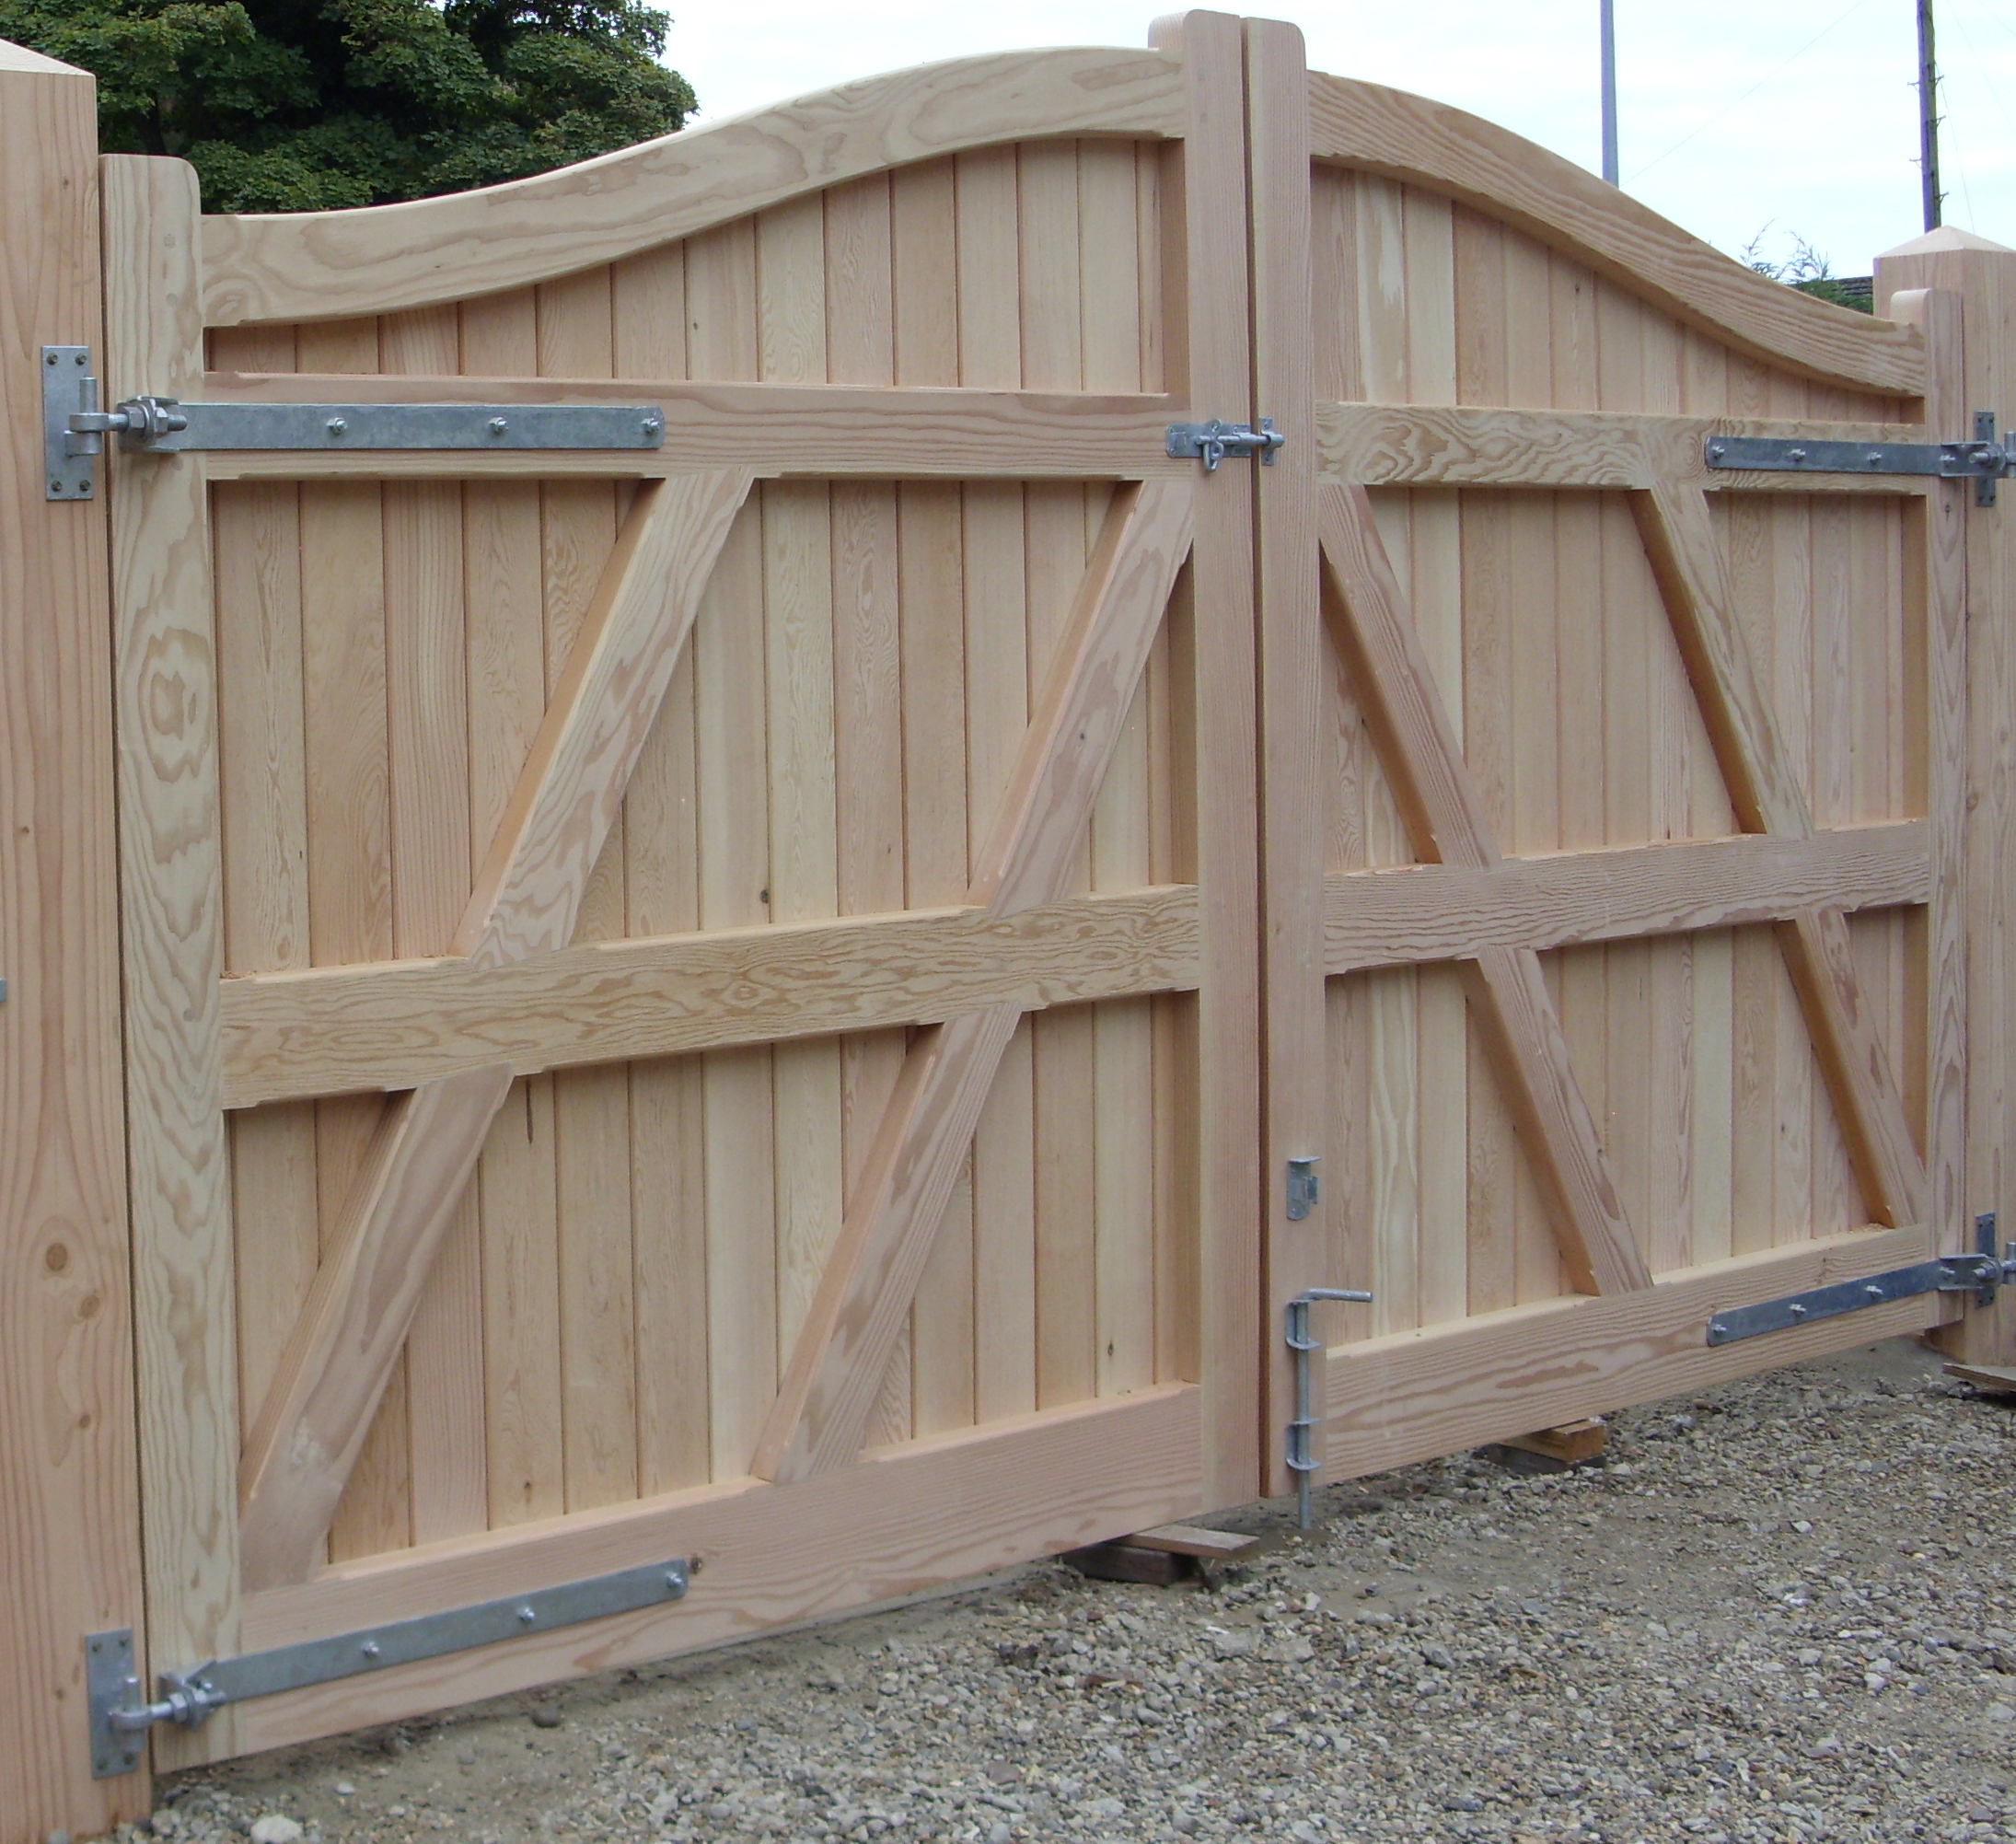 Needham gates in Douglas fir from reverse